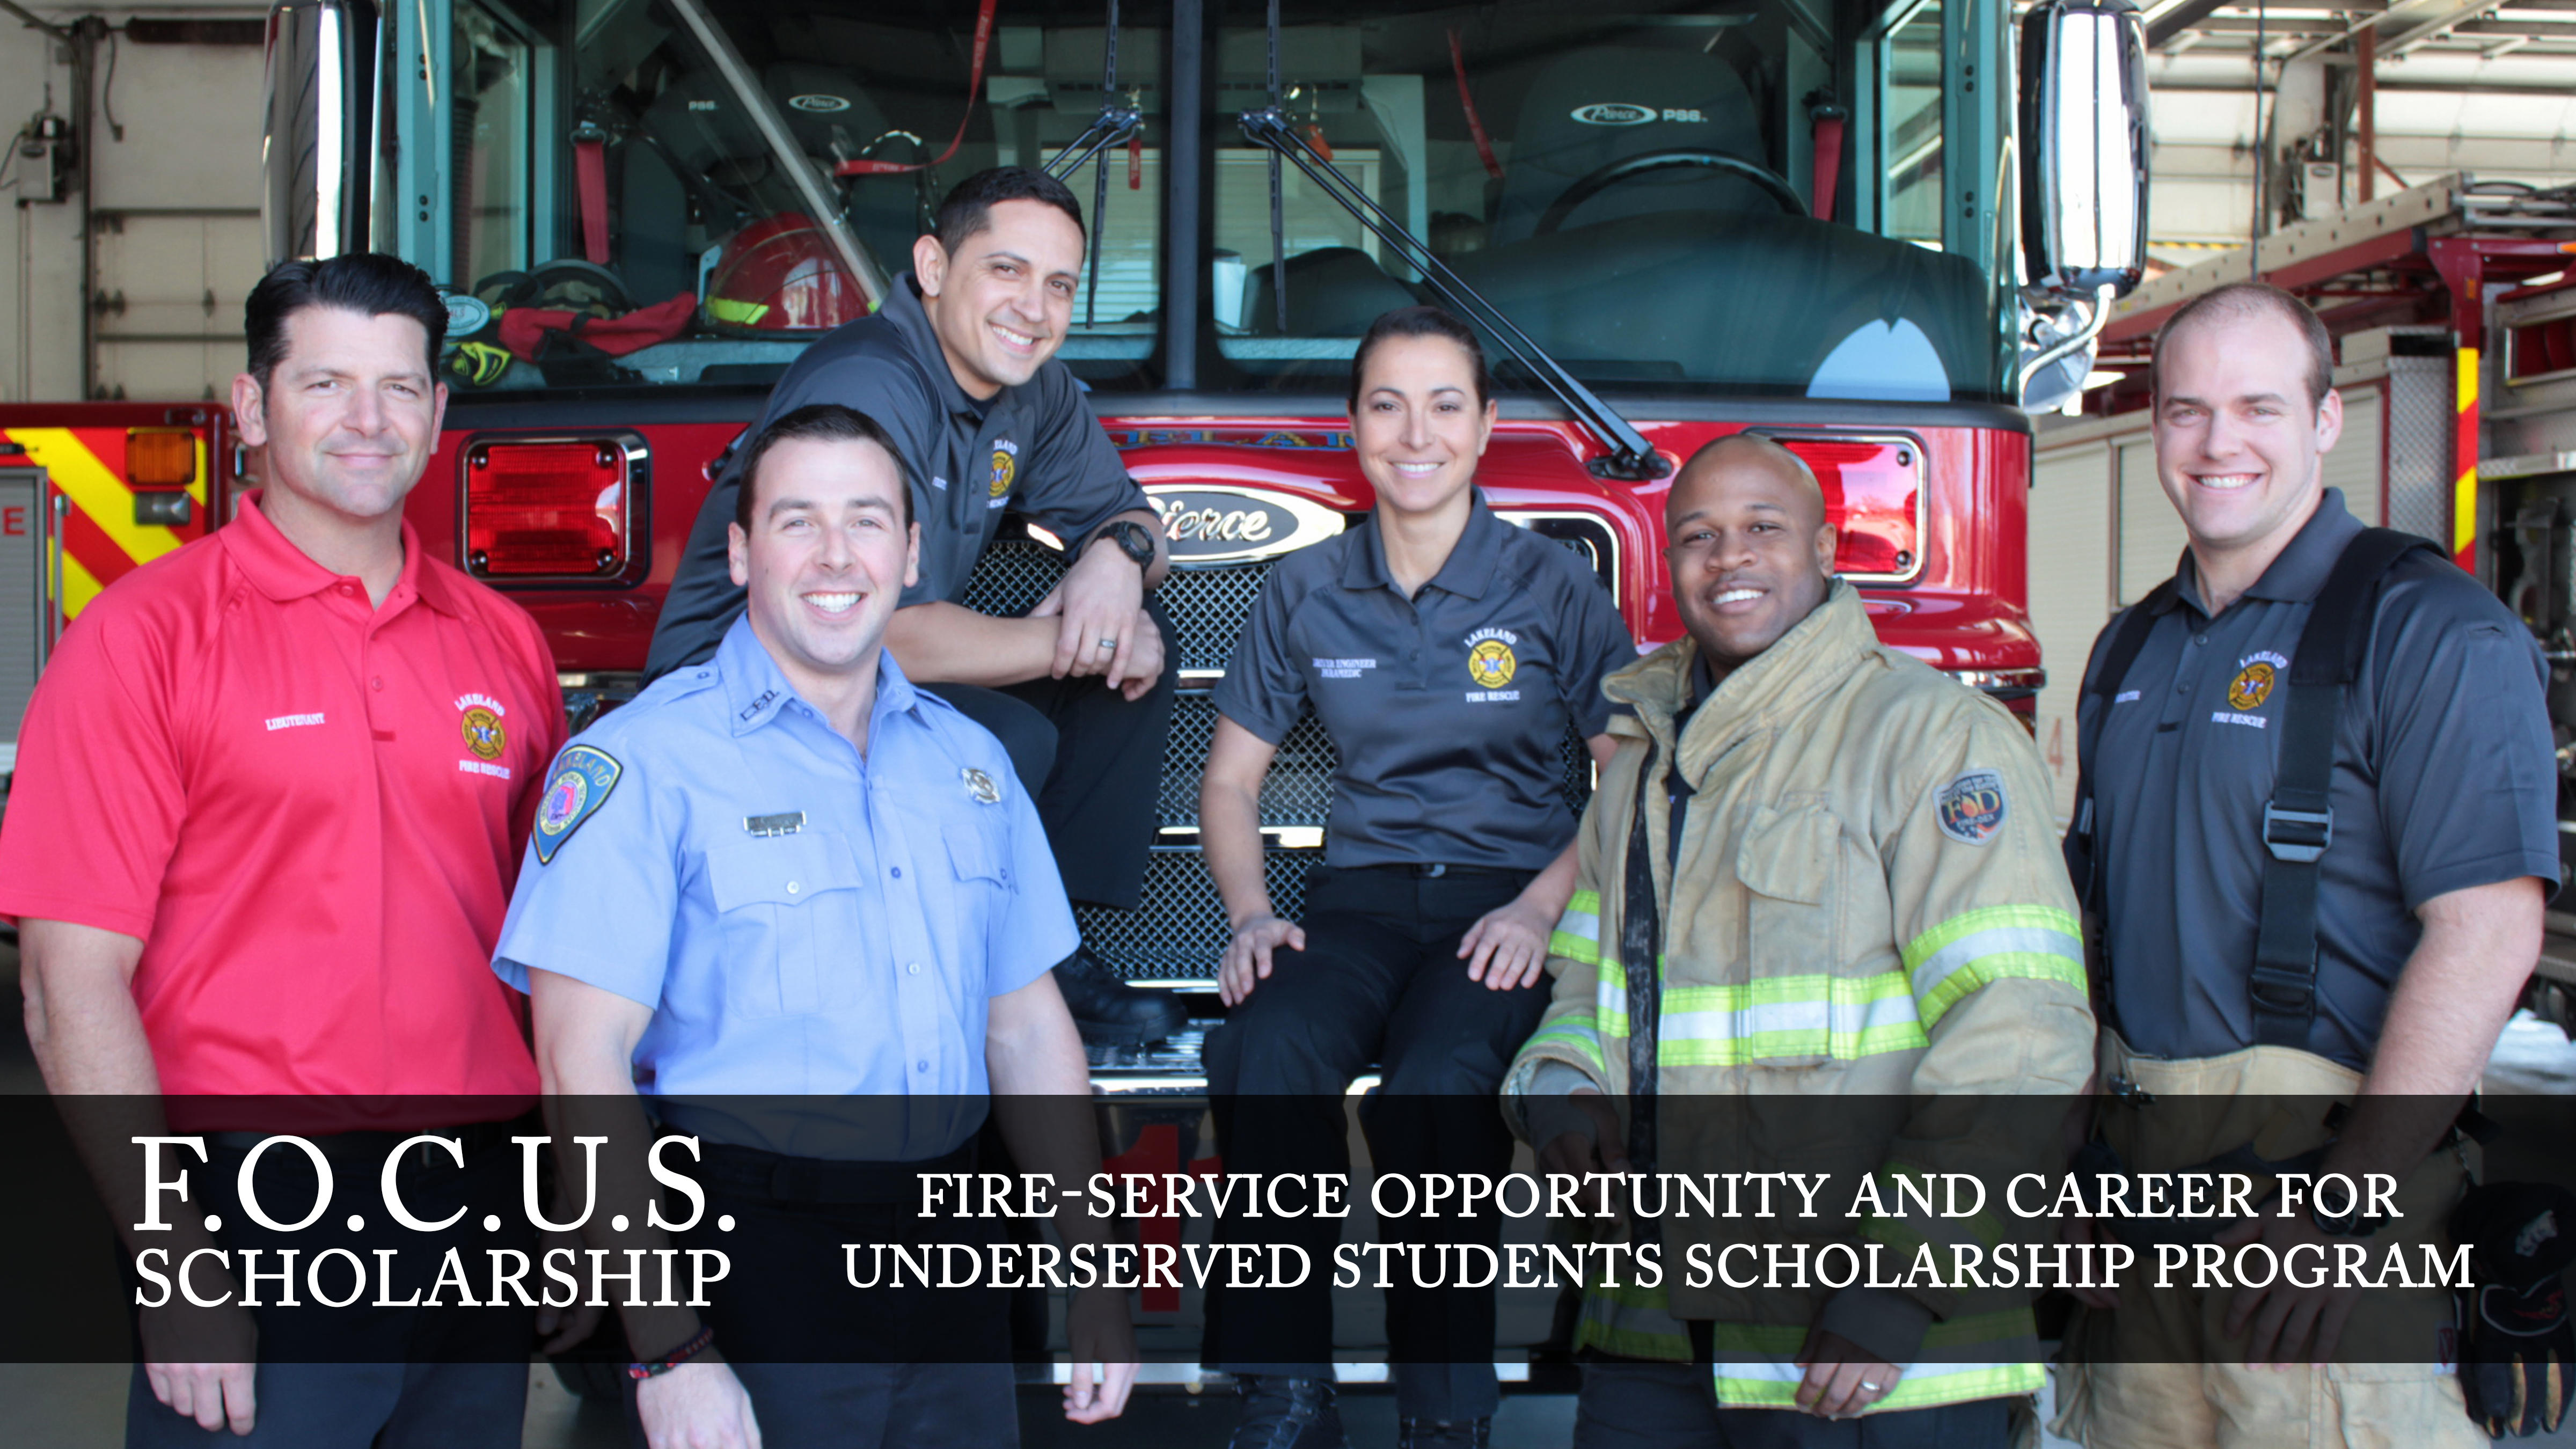 Image of diverse firefighters promoting scholarship program